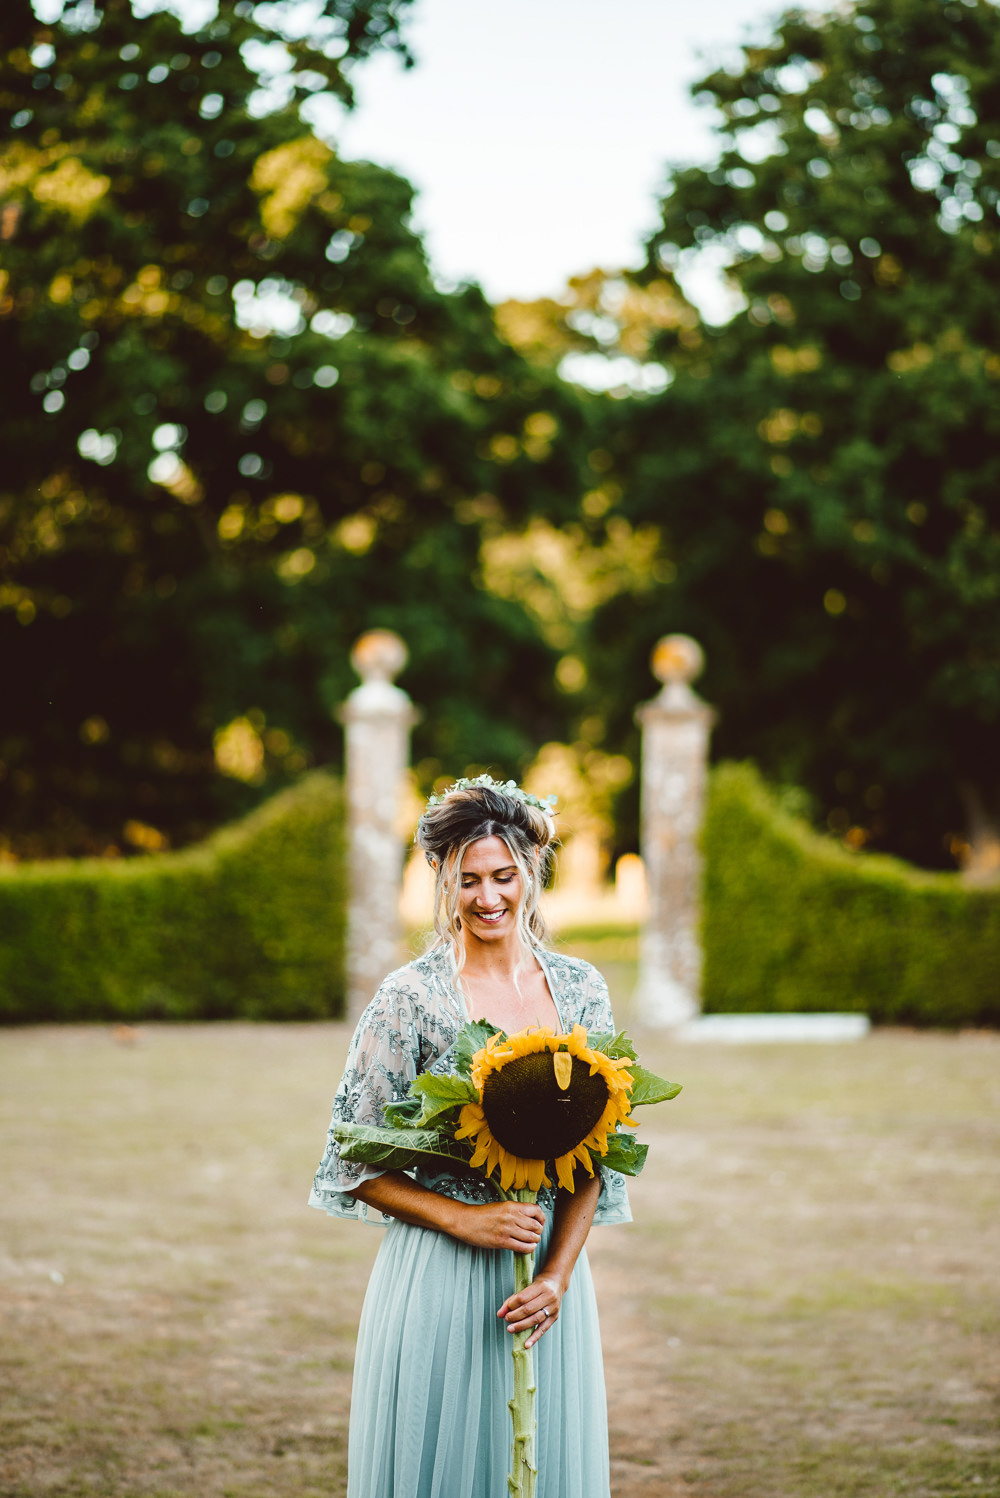 Large Sunflower Bouquet Bride Bridal Flowers Ethereal Magical Golden Hour Wedding Ideas Dhw Photography